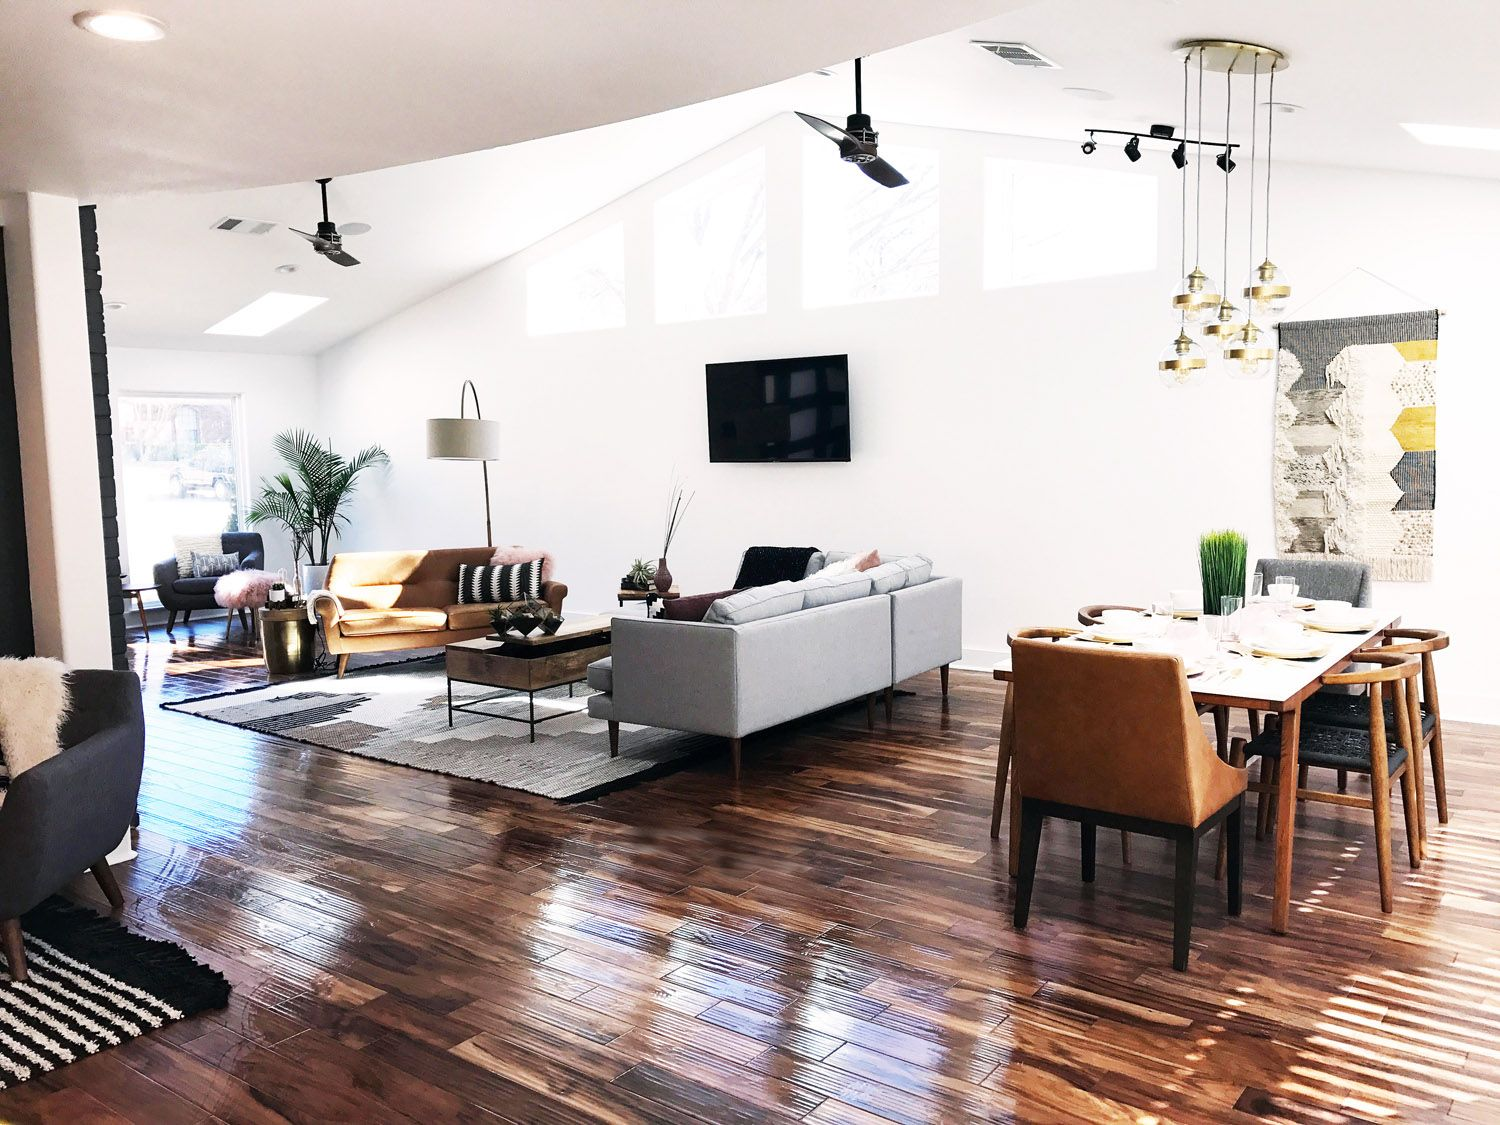 west elm - Before + After - A Modern House Gets A Makeover From The ...